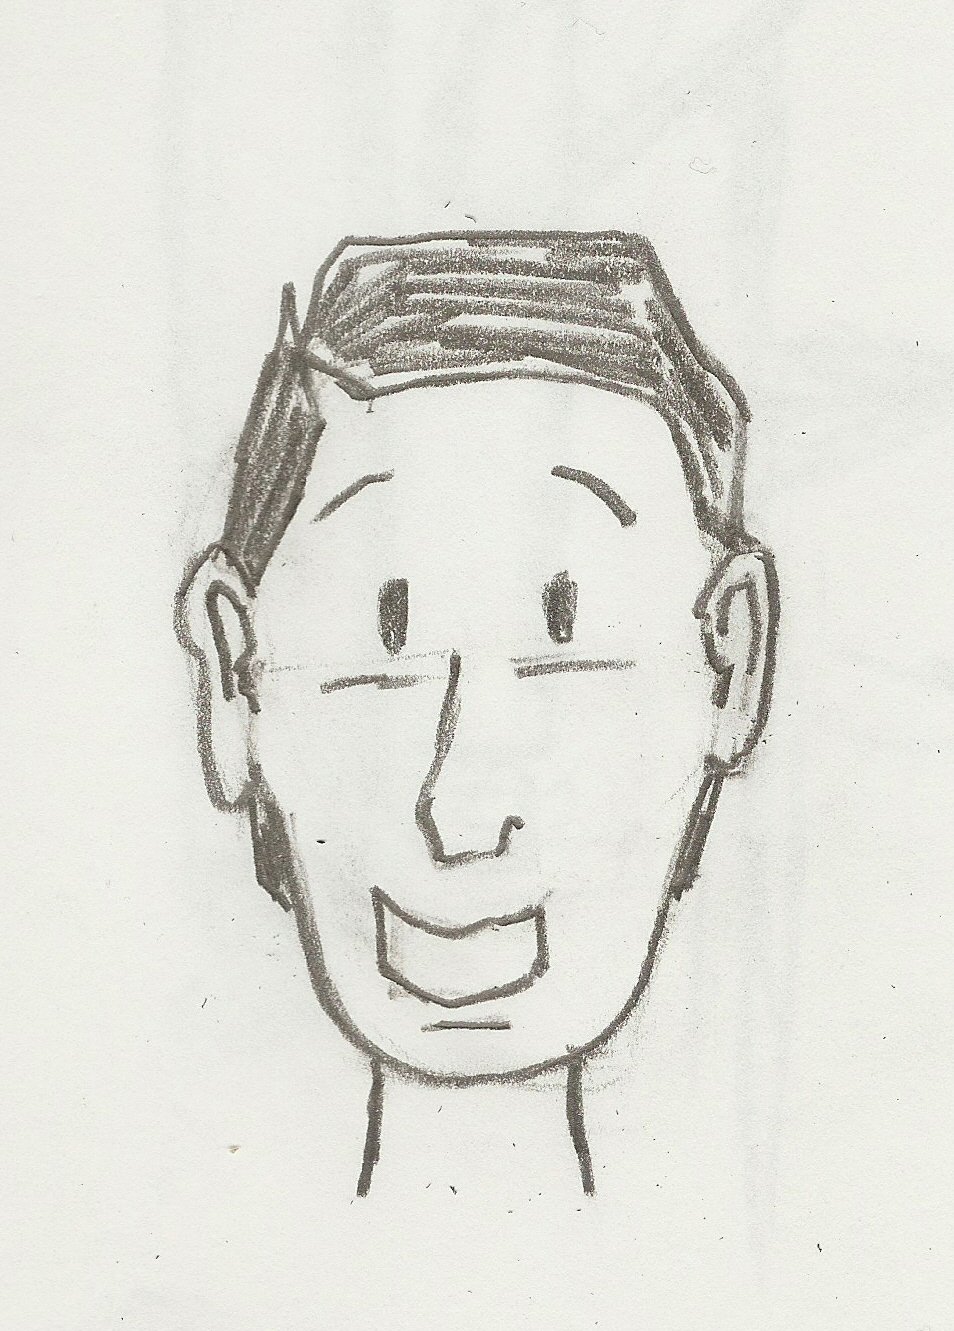 Self portrait of the author when he was much younger and before he started losing his hair.